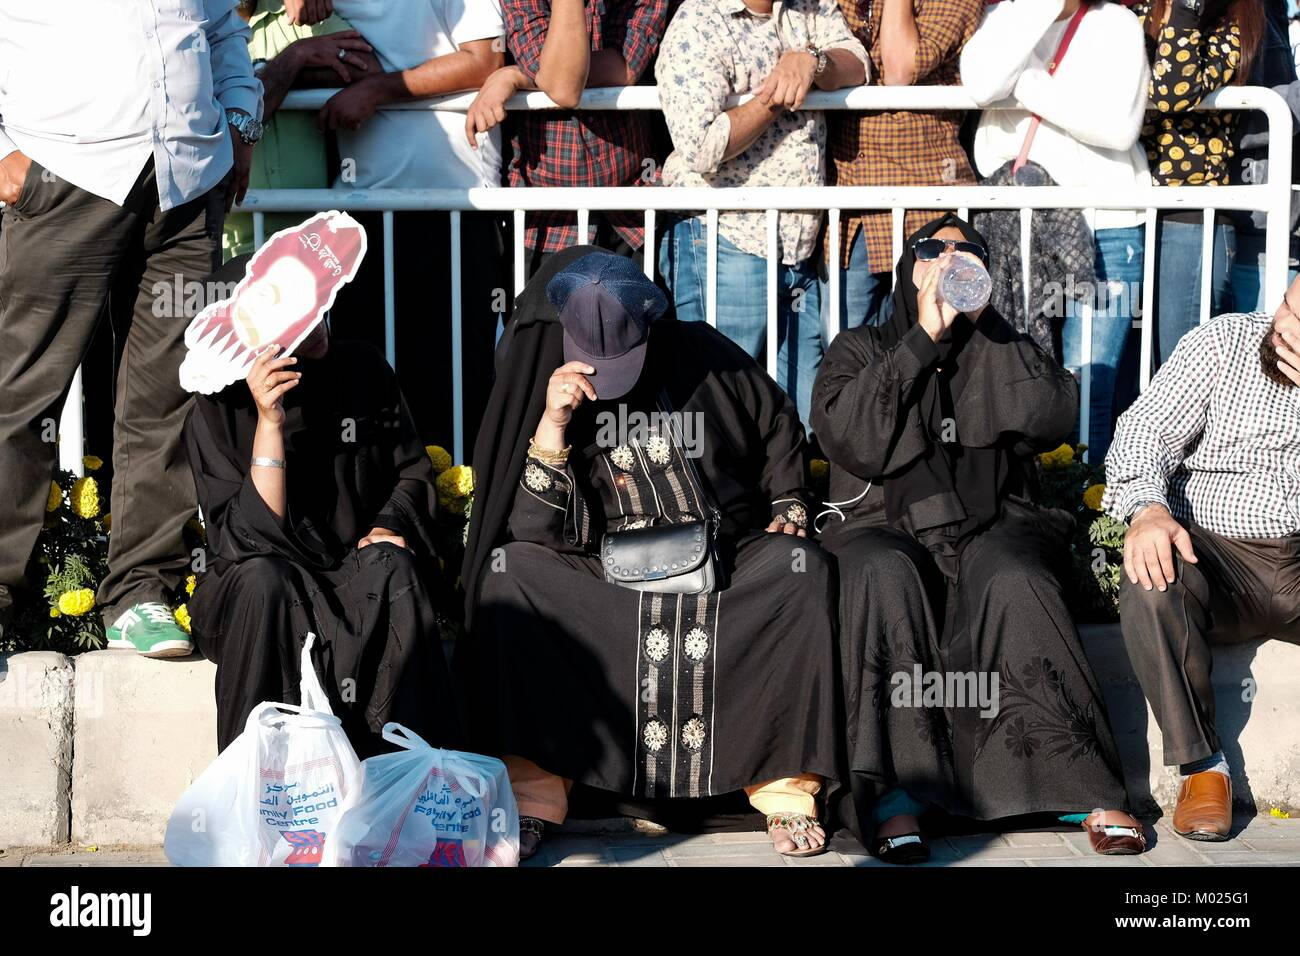 Burka clad women shield themselves from the Qatar sun. - Stock Image